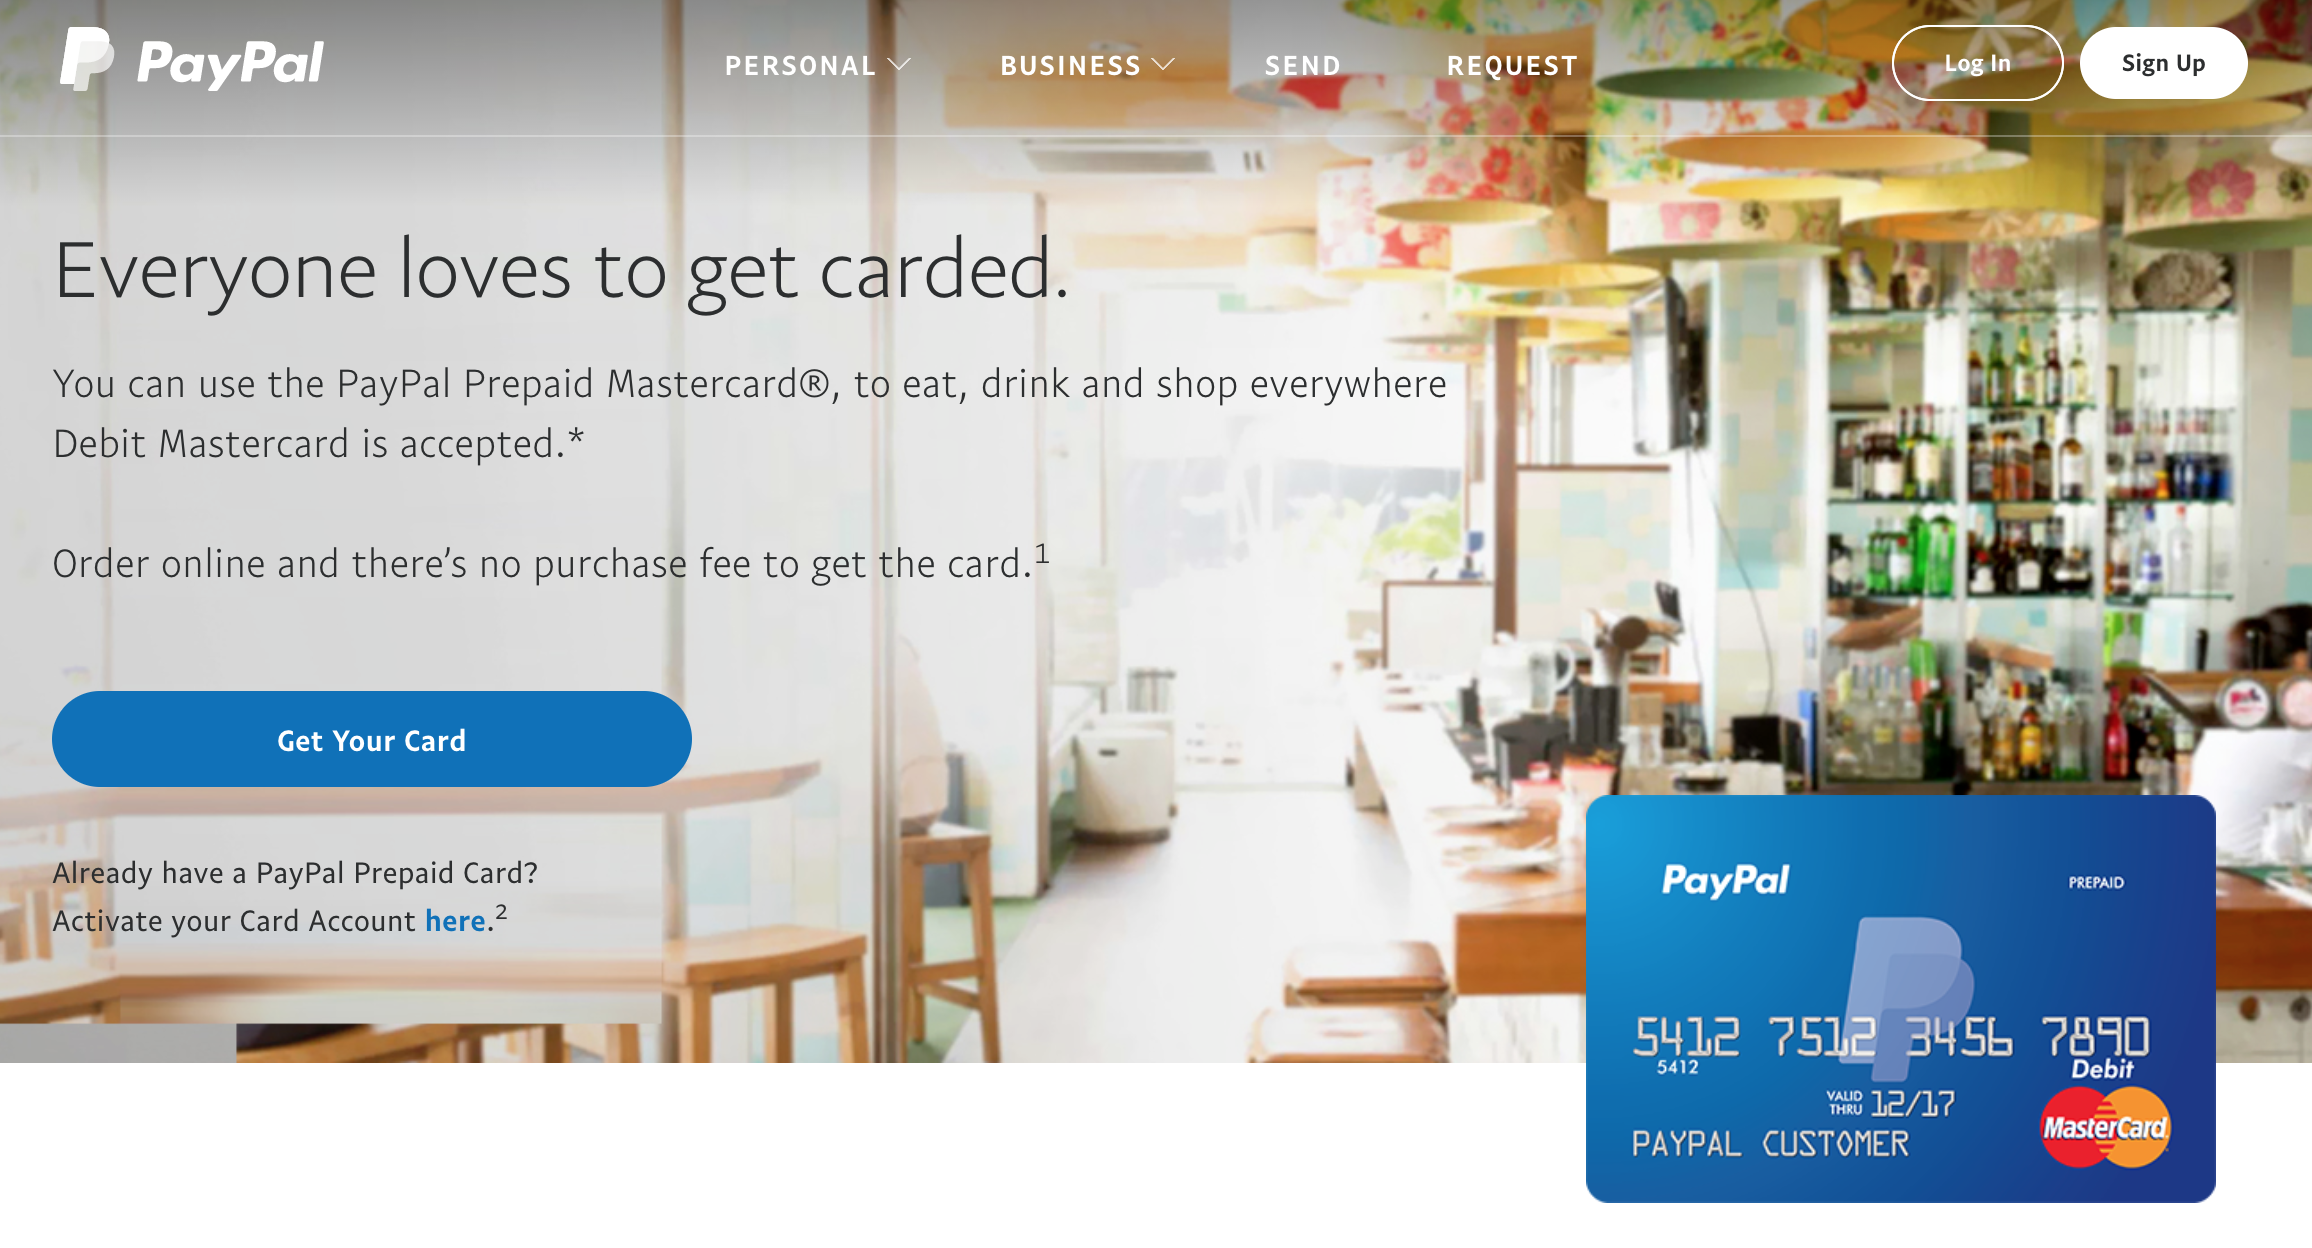 PayPal Prepaid Mastercard & Cash Mastercard Debit Cards - Worth it?